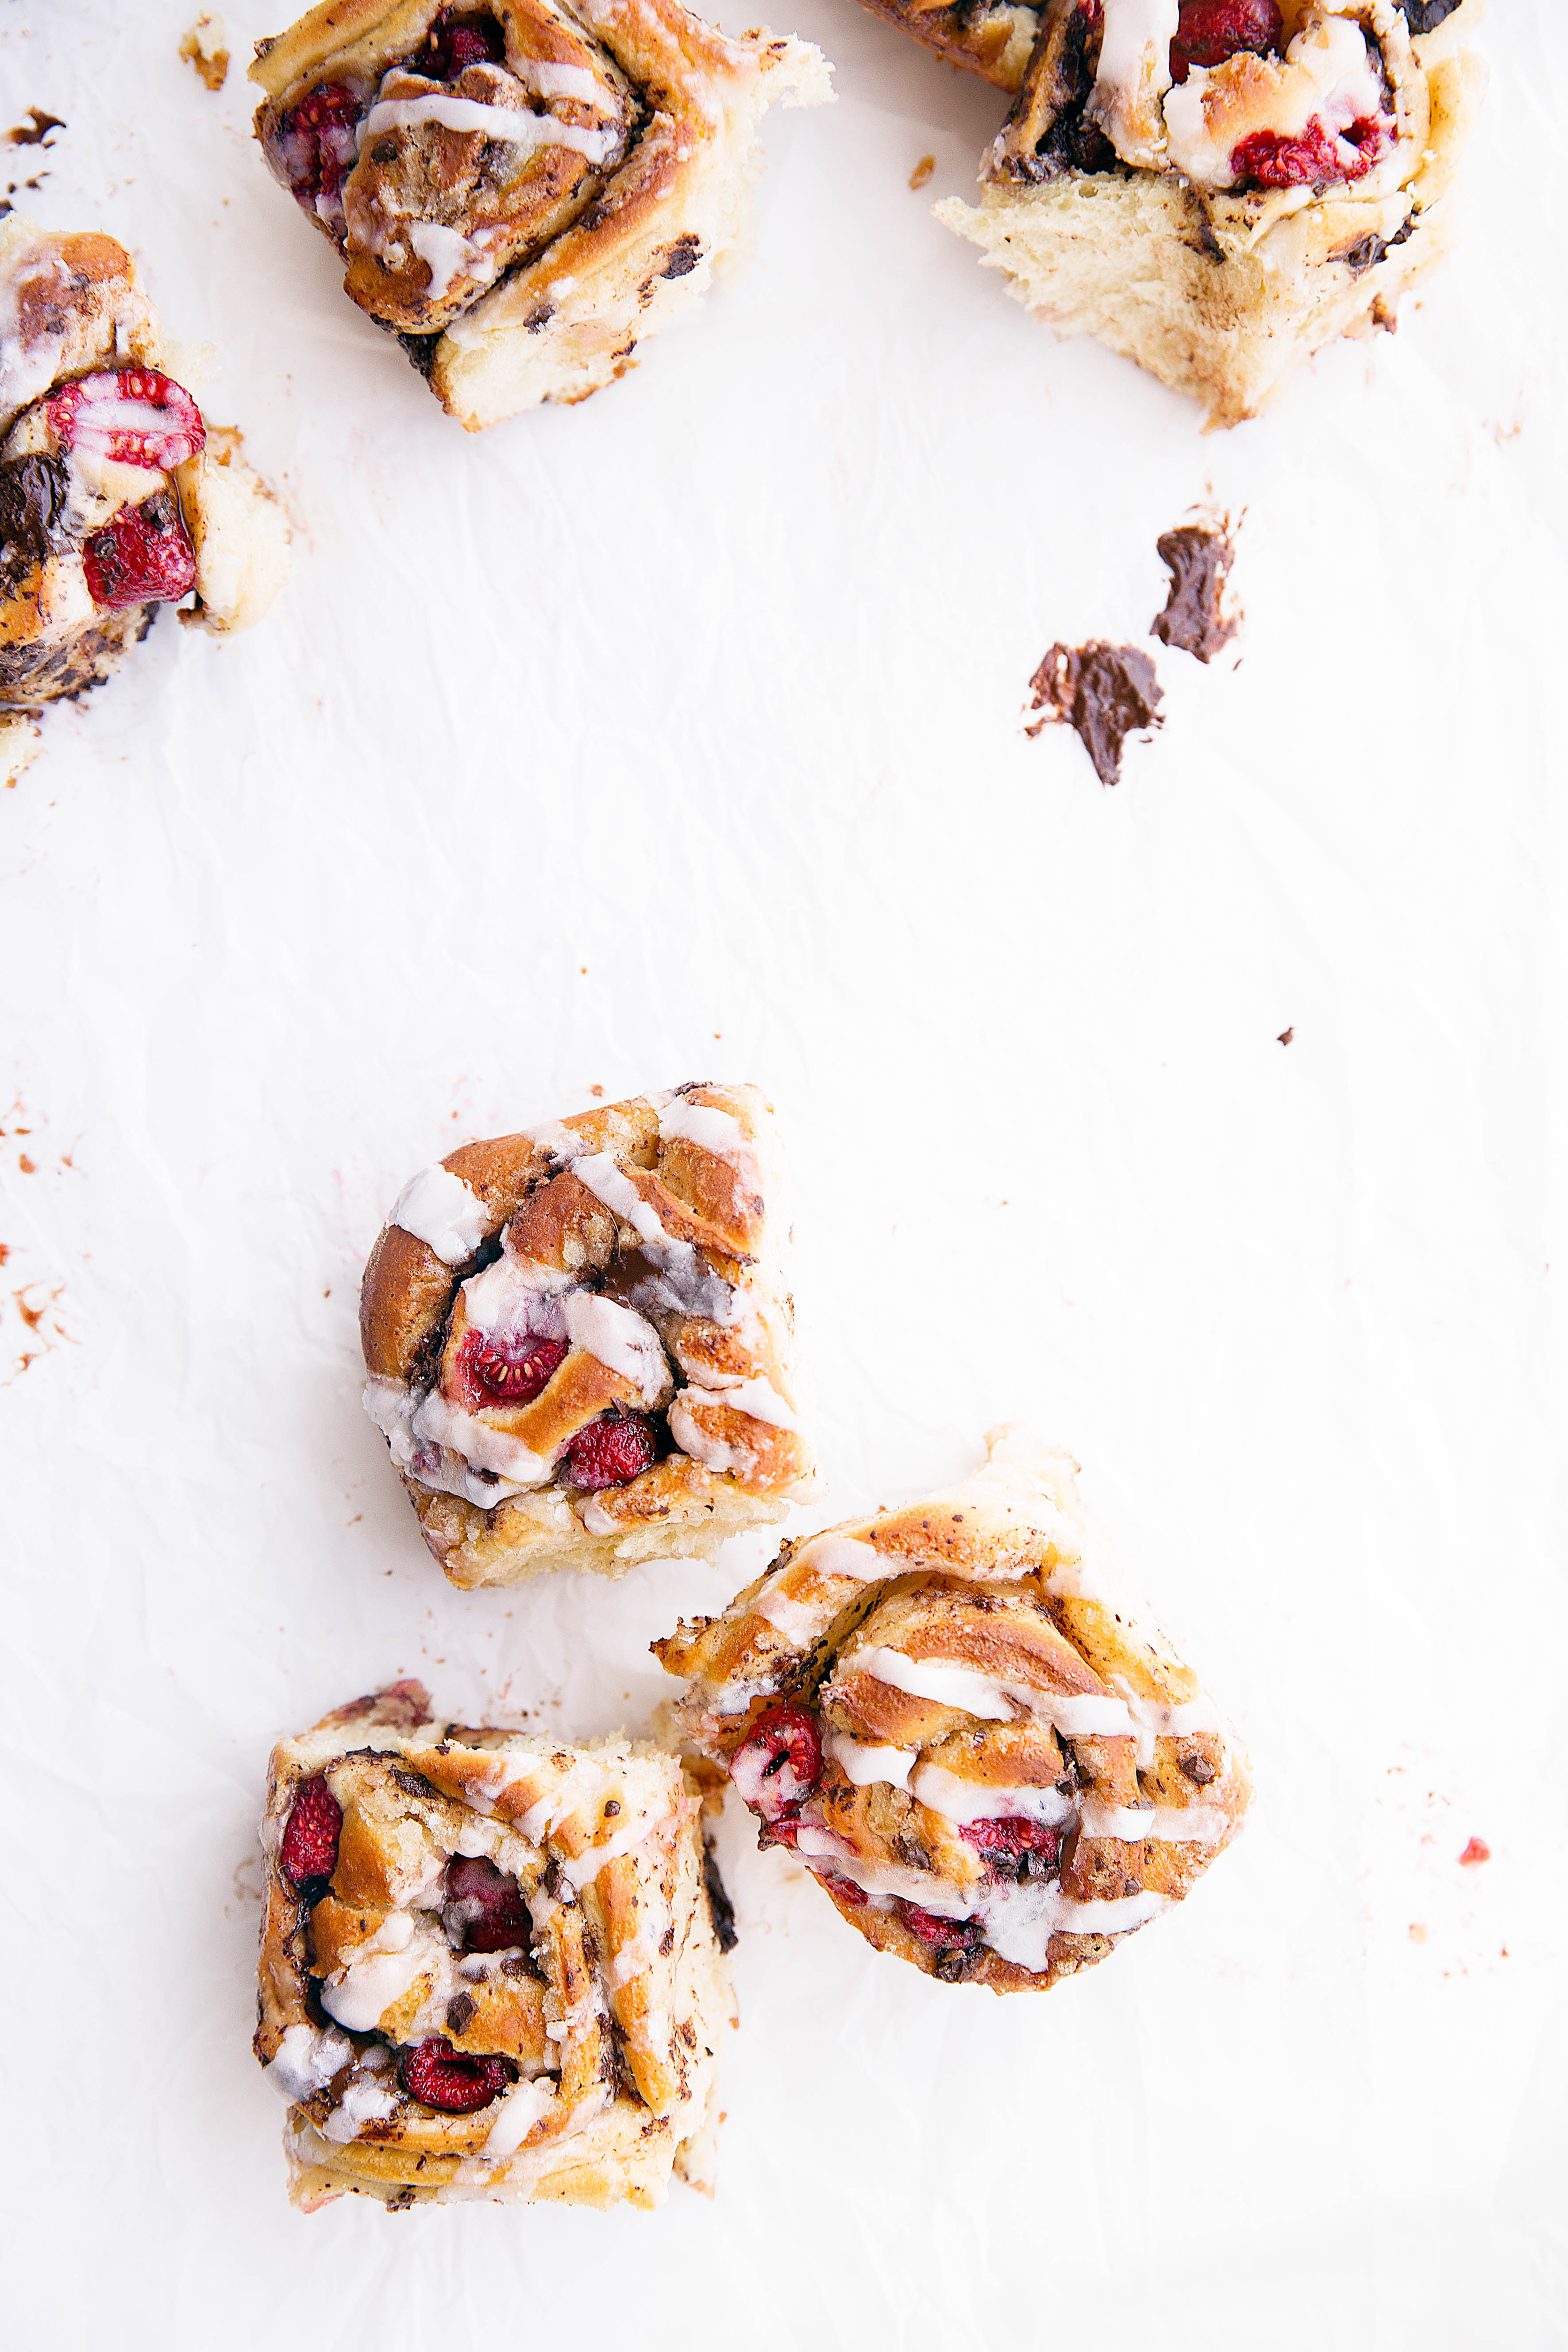 Pieces of dark chocolate and plump raspberries are tucked inside the most light and chewy dough in these Dark Chocolate Raspberry Sticky Buns. Quite possibly the best buns I've ever had!